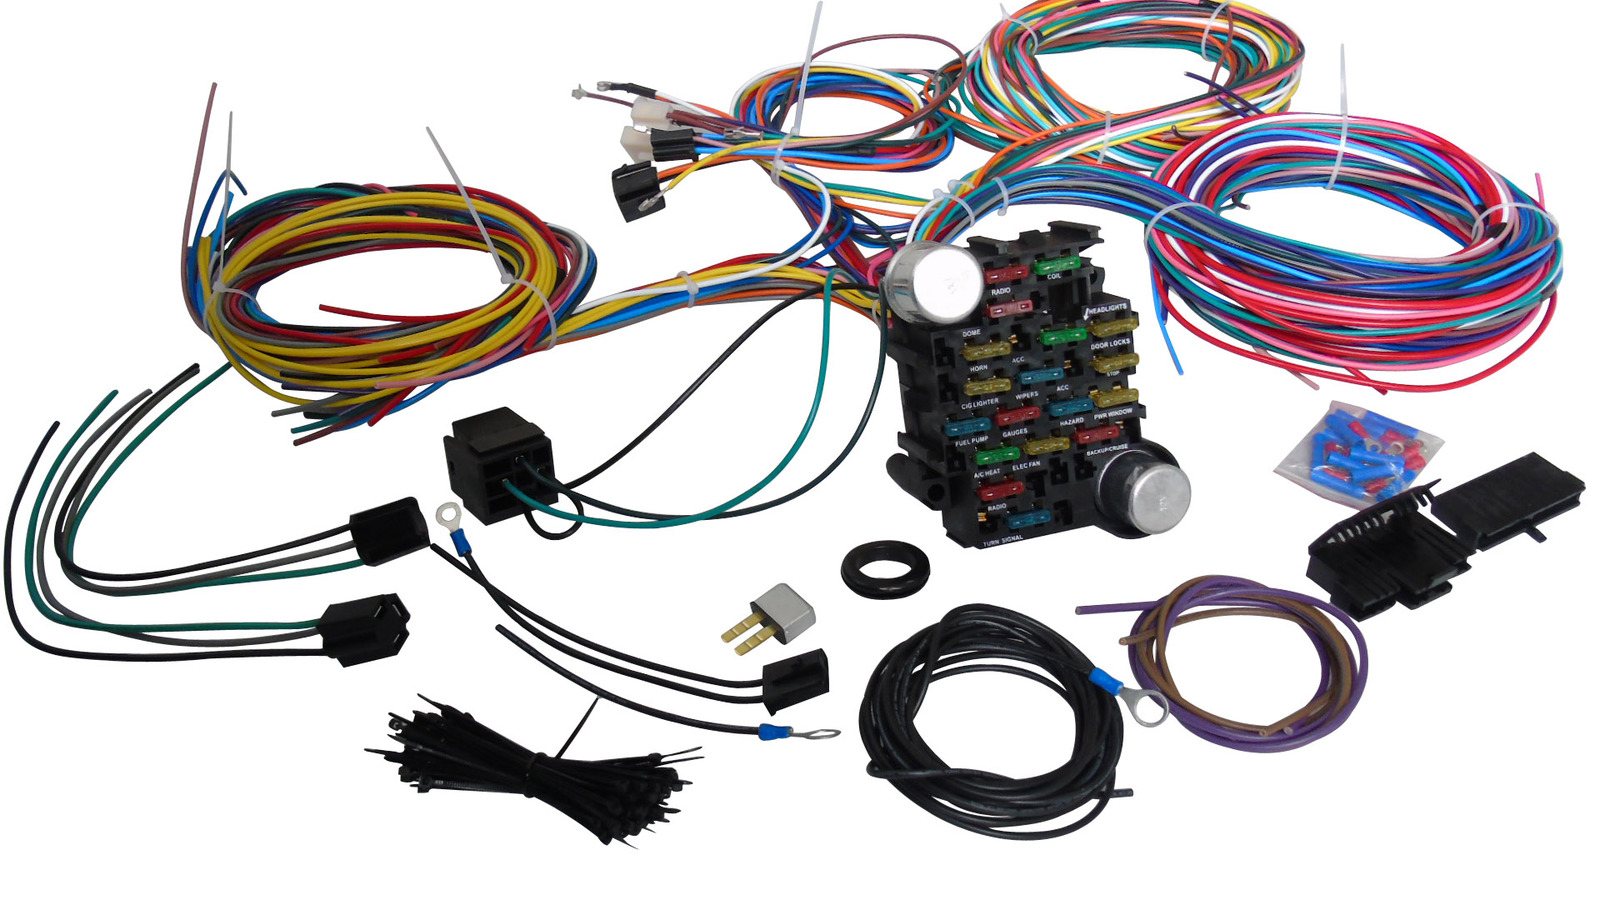 Custom Ford Wiring Harness Kits Great Design Of Diagram 1978 Truck 21 Circuit Street Hot Rat Rod Universal Color